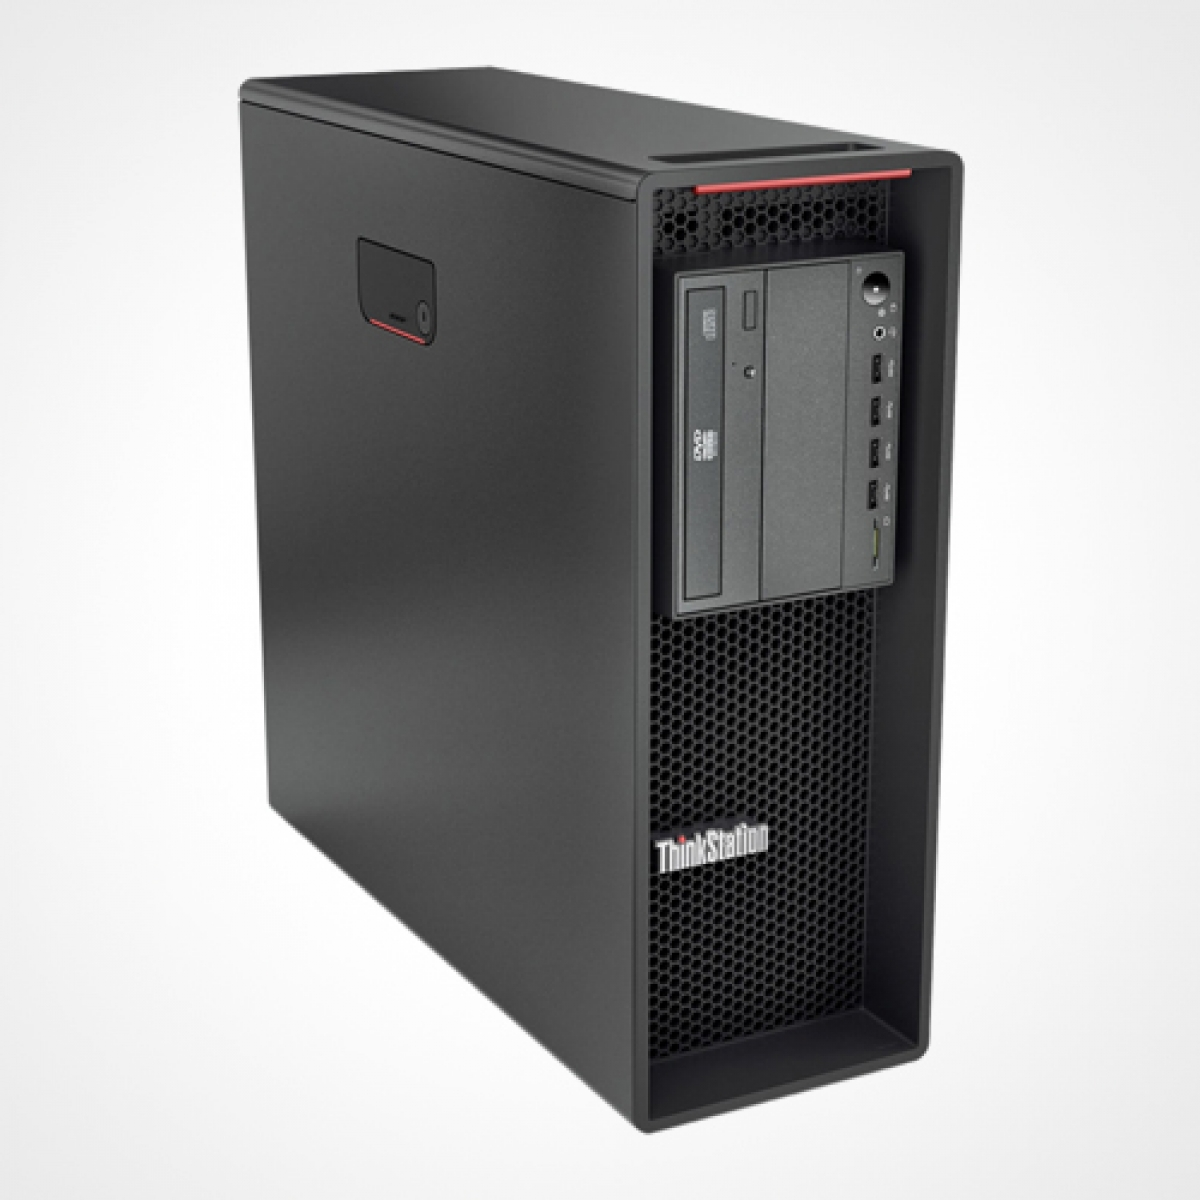 ThinkStation P520 Workstation